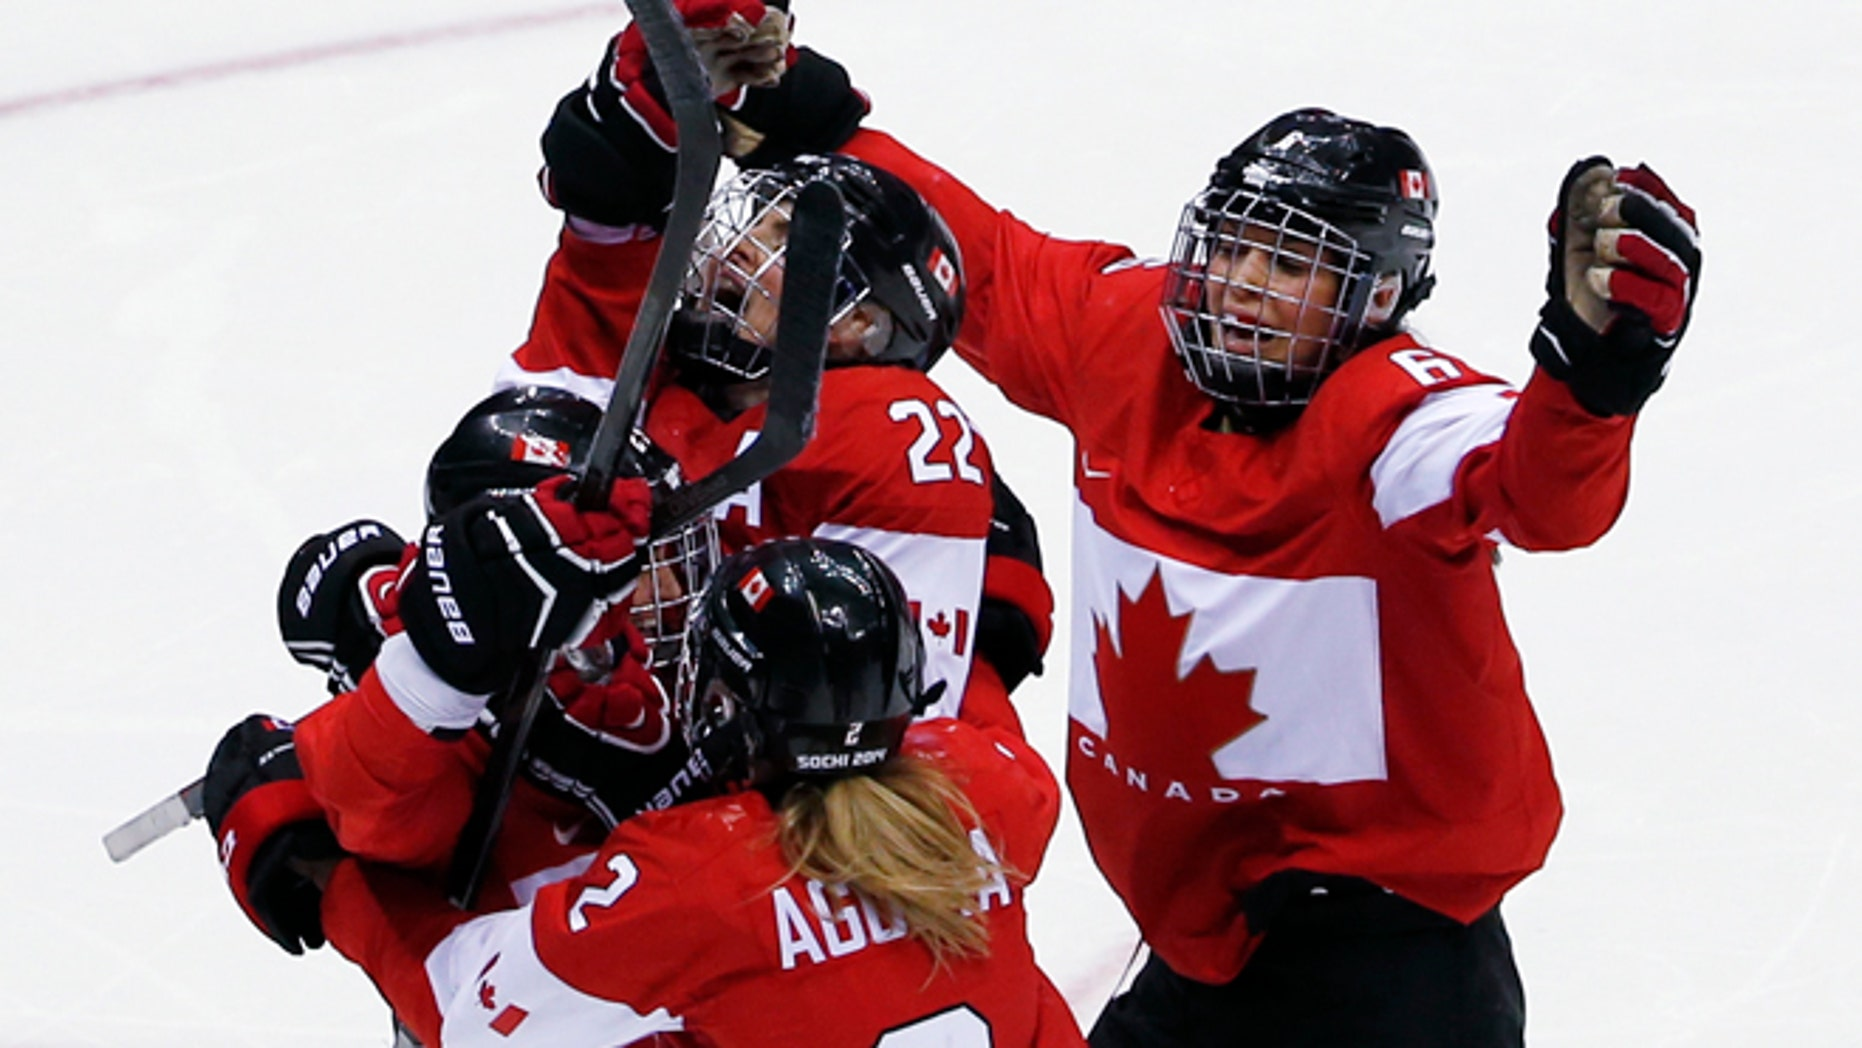 Feb. 20, 2014: Marie-Philip Poulin of Canada (29) is swarmed by teammates after scoring the game-winning goal in overtime against USA at the women's gold medal ice hockey game at the 2014 Winter Olympics in Sochi, Russia.